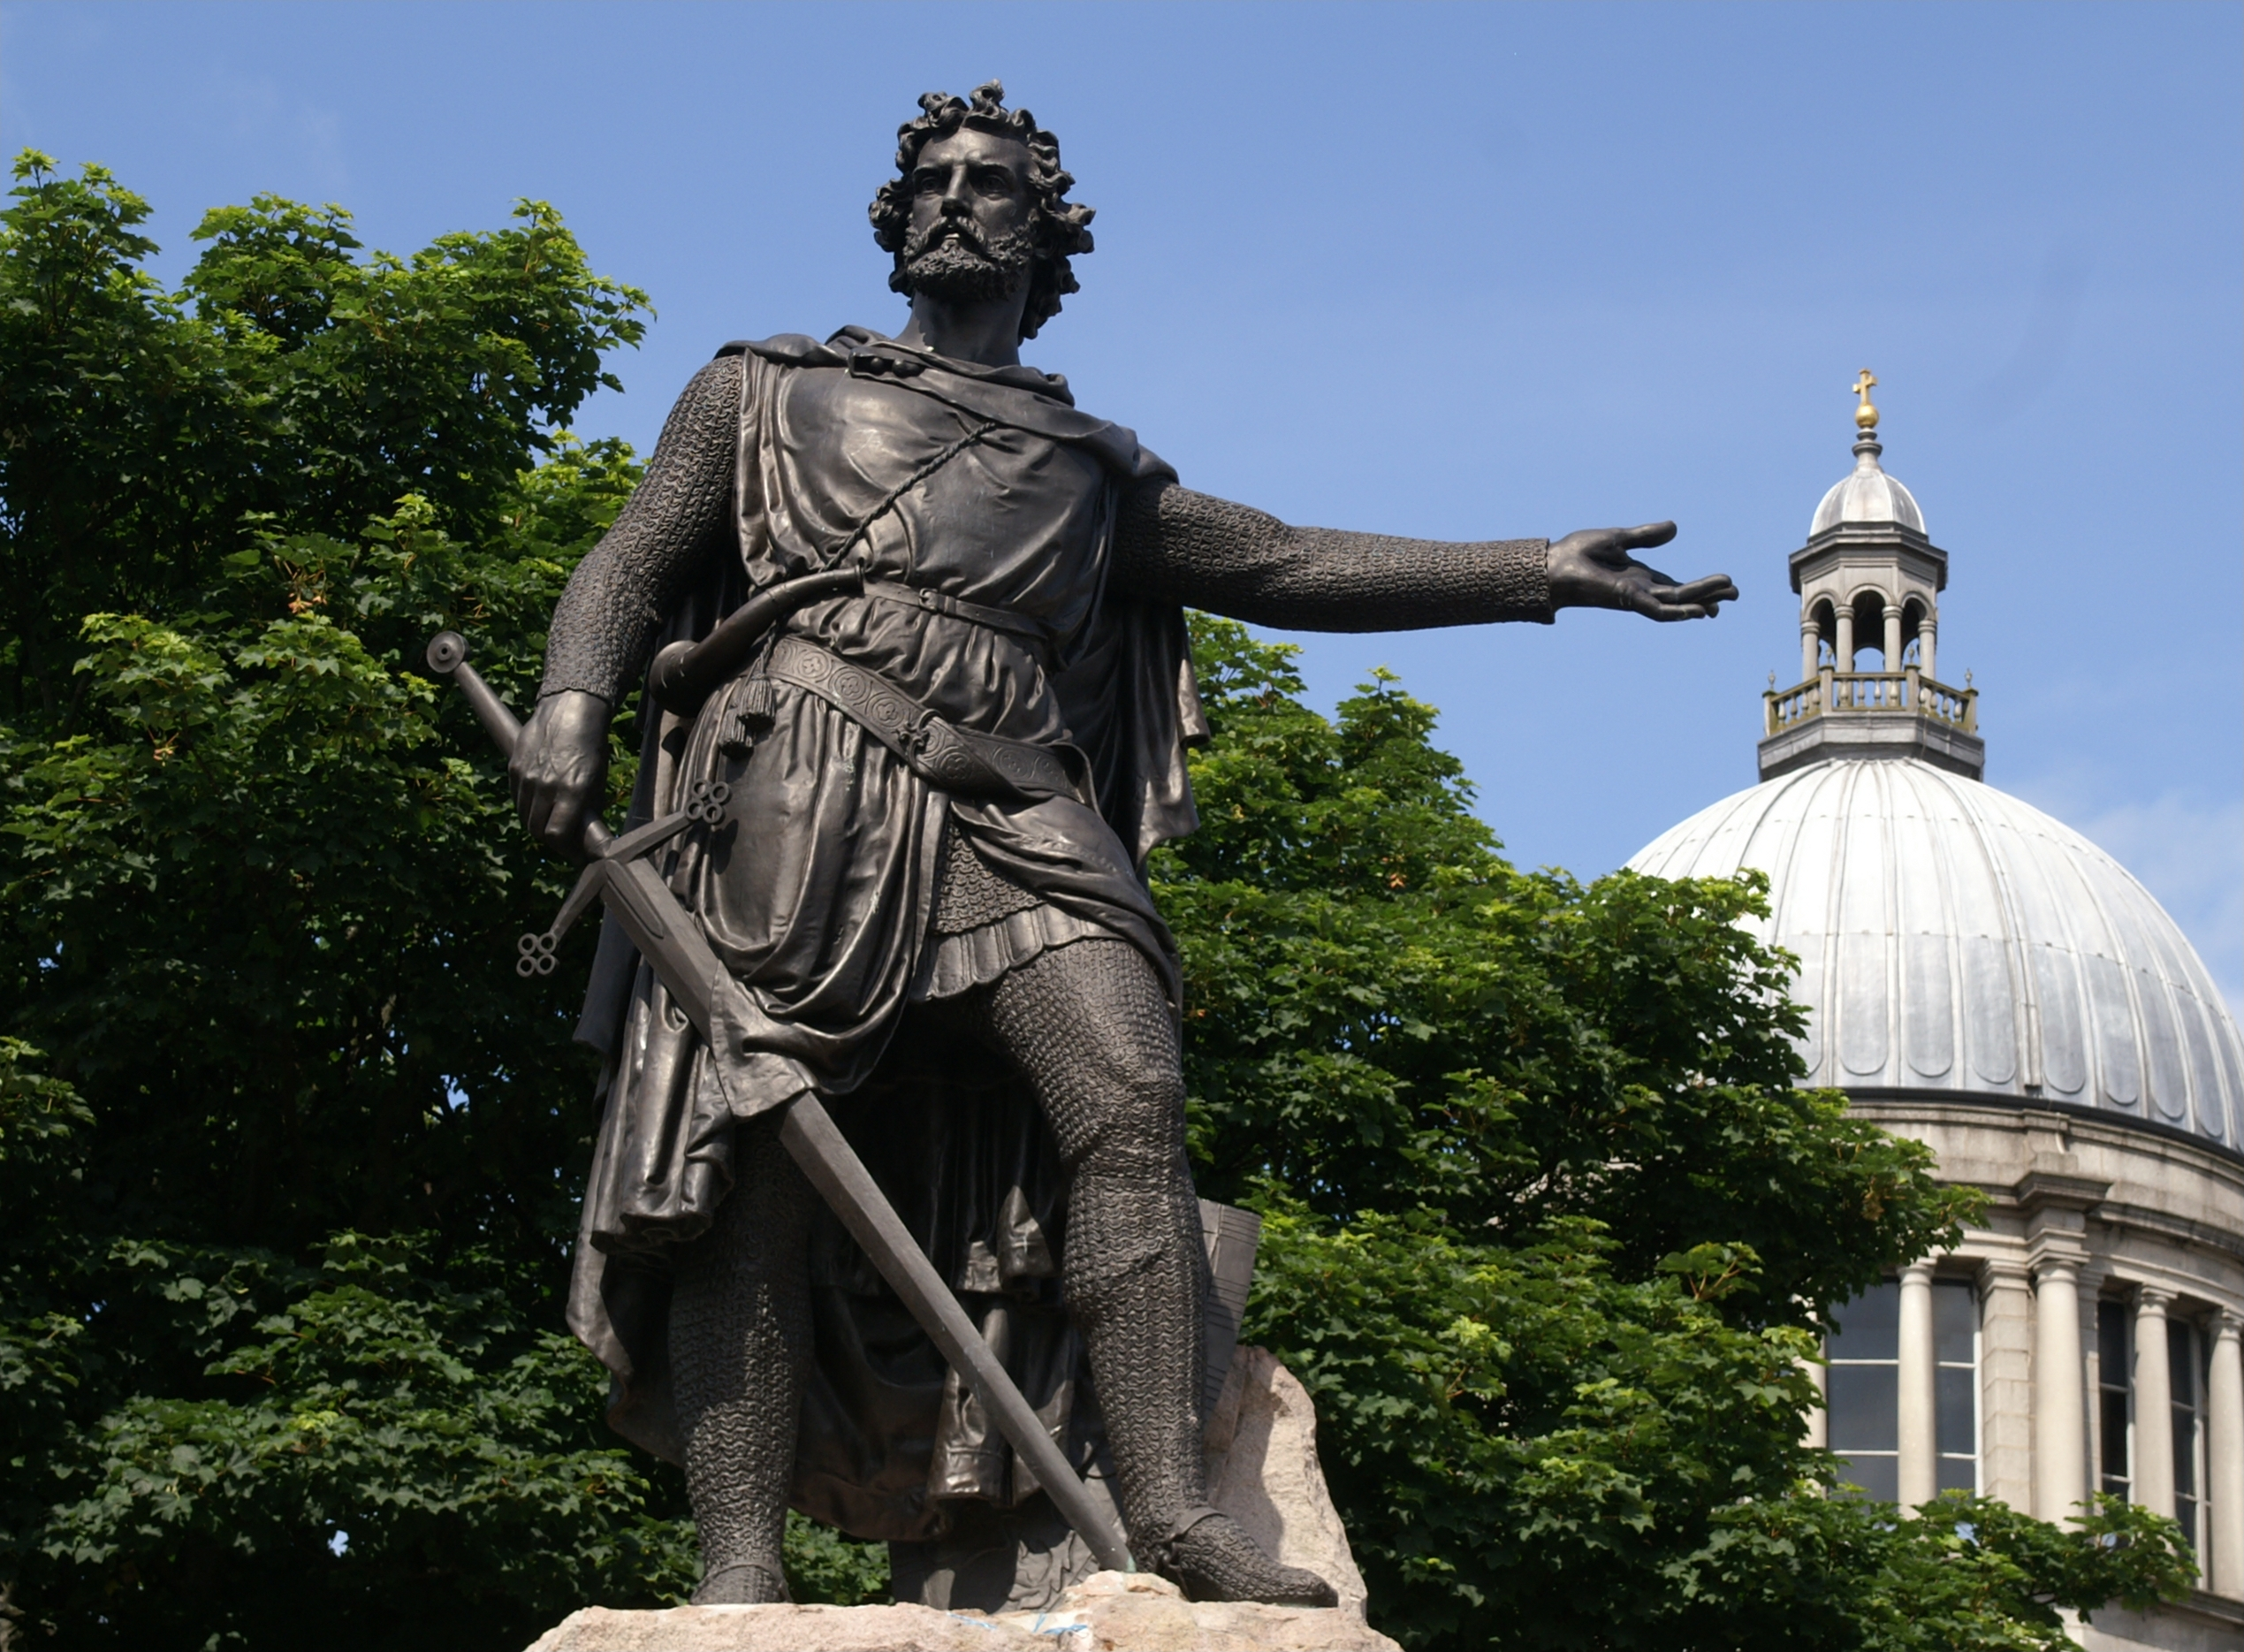 This Day in History: August 5th- Capturing William Wallace